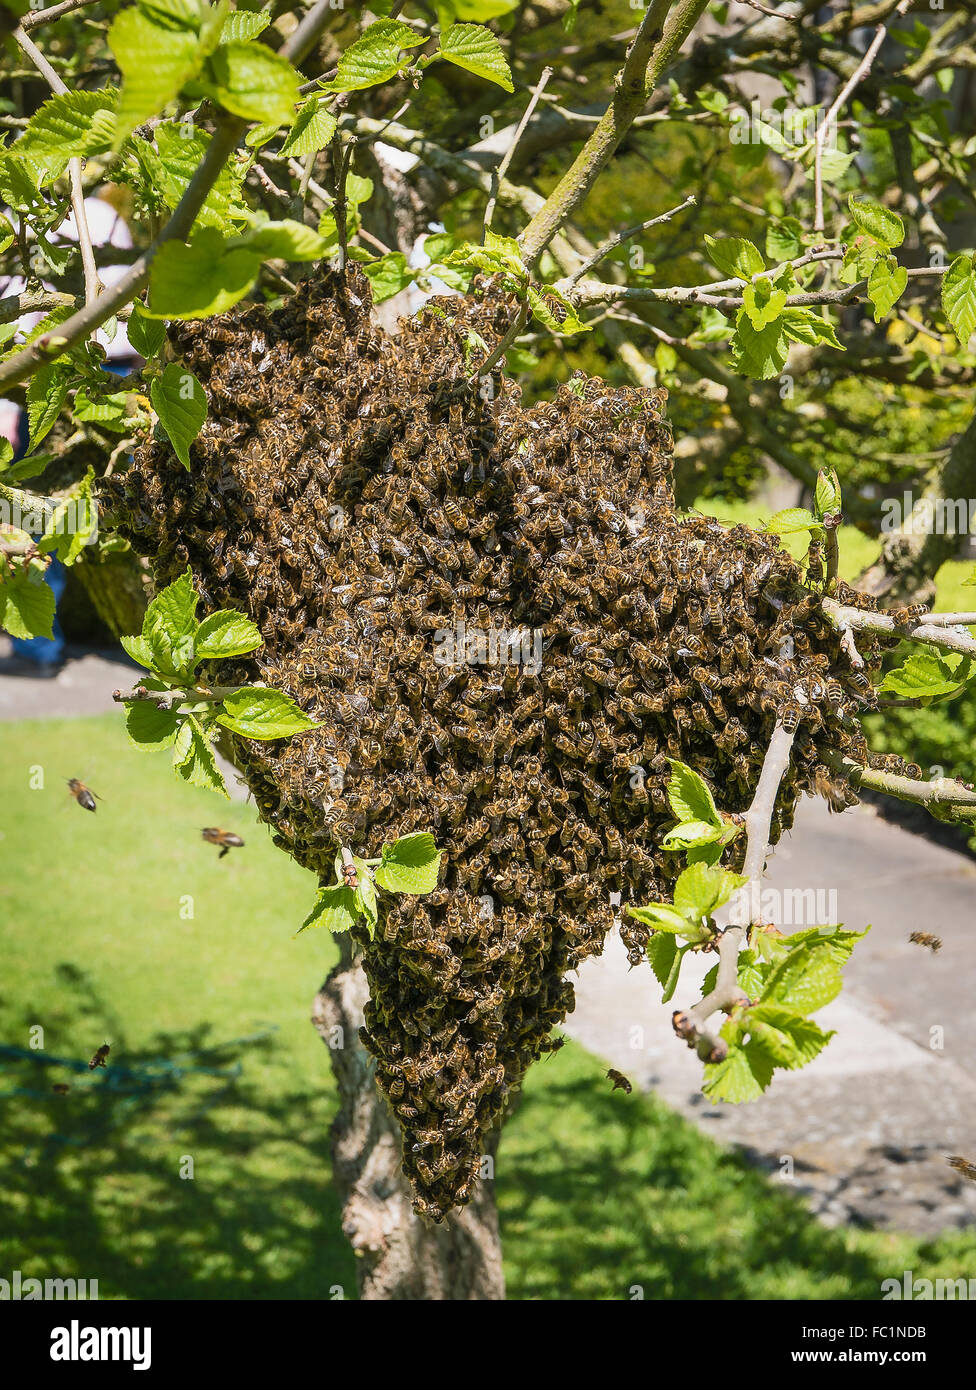 Swarm of bees in a small mulberry tree in Spring - Stock Image